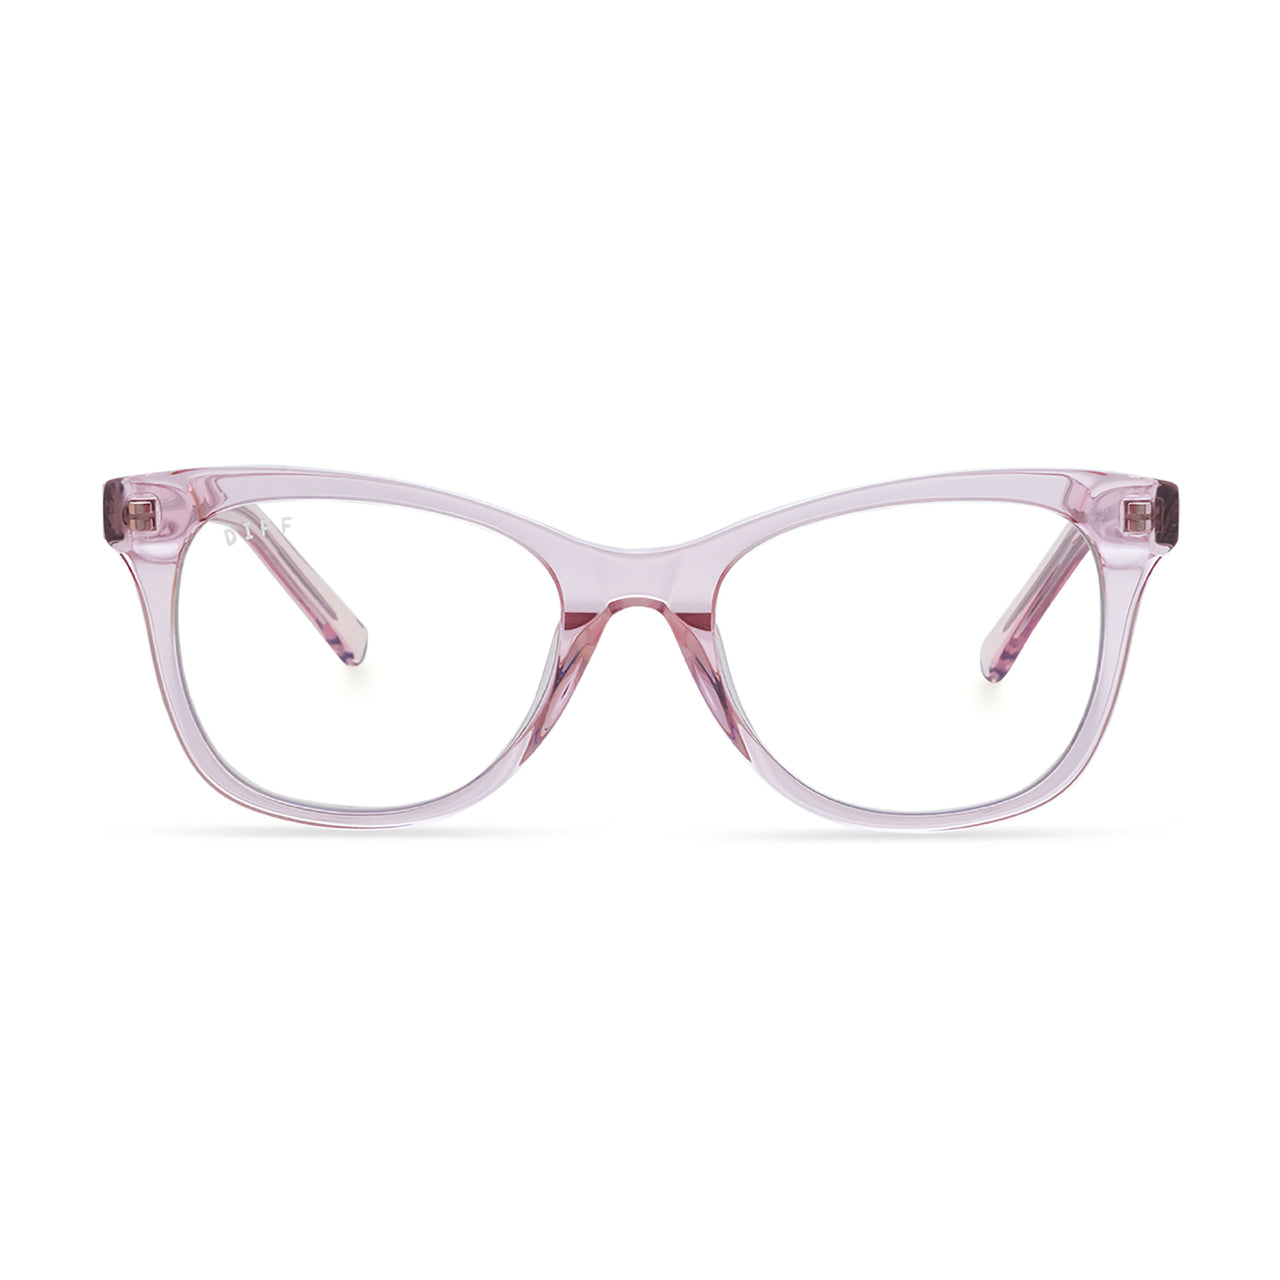 CARINA - LIGHT PINK CRYSTAL + CLEAR FRONT